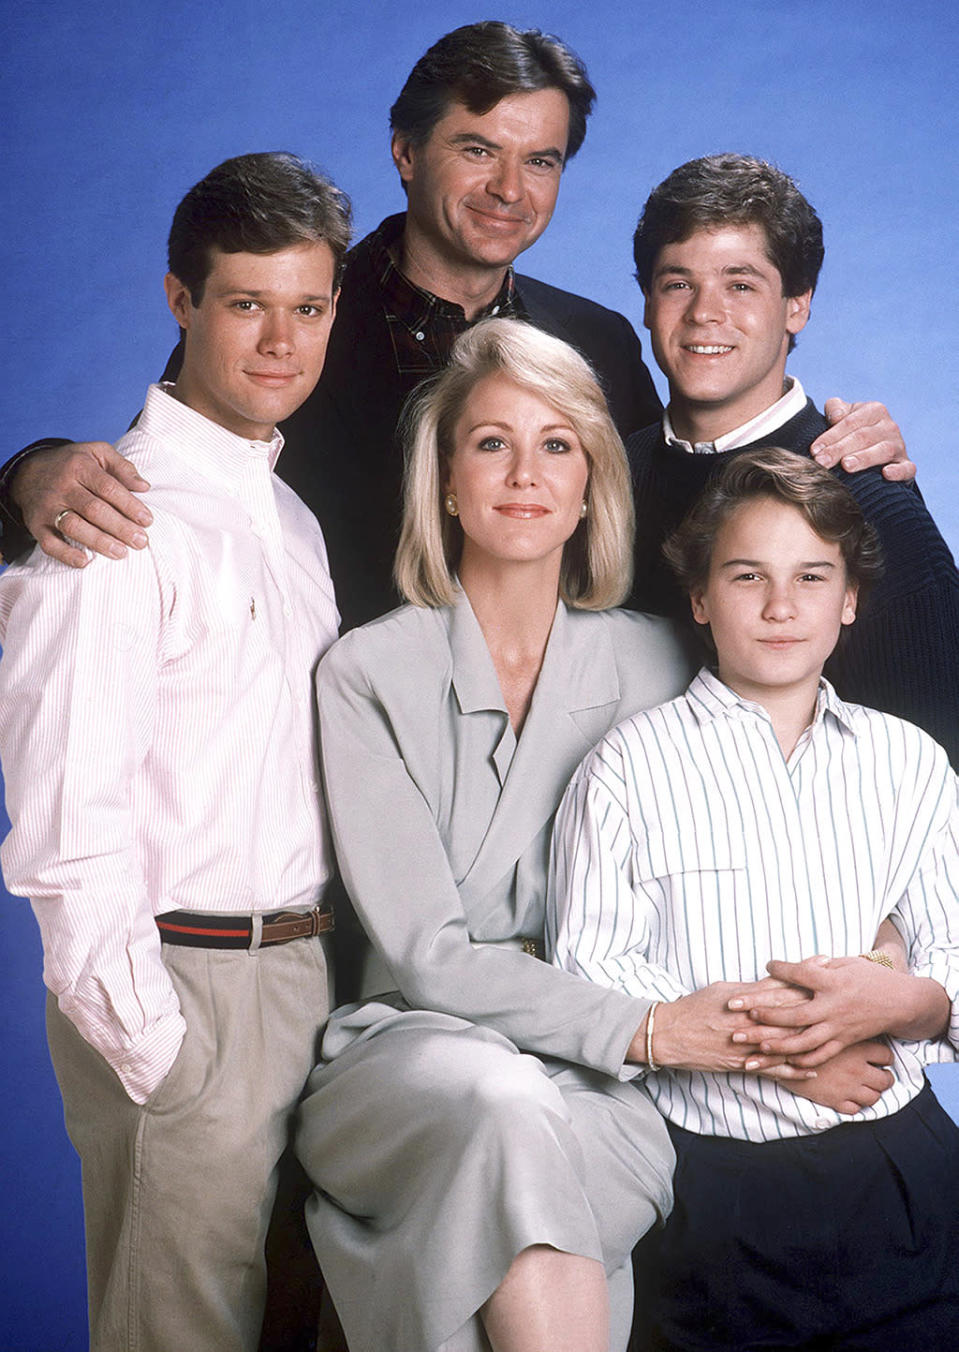 <p><b>Aired:</b> February 11, 1990 on NBC<br><b>Stars:</b> Robert Urich, Joanna Kerns, and Johnny Galecki<br><br><b>Ripped from the headlines about:</b> New Jersey businessman Rob Marshall, who in 1984 hired a contract killer to murder his wife, Maria, so he could be with his mistress and pay off his debts with insurance money. Marshall, originally given the death penalty, then a life sentence, was scheduled for a March 2015 parole hearing, but died in a Jersey prison a month earlier. The movie, an Emmy nominee for Outstanding Miniseries, was based on a book by bestselling true crime author Joe McGinniss. In a happier postscript, Kerns had become close to real-life Rob Marshall son Roby during filming, and set him up with her <i>Growing Pains</i> TV daughter Tracey Gold. Marshall and Gold have been married for more than 20 years and have four sons. <br><br><i>(Credit: Getty Images)</i> </p>